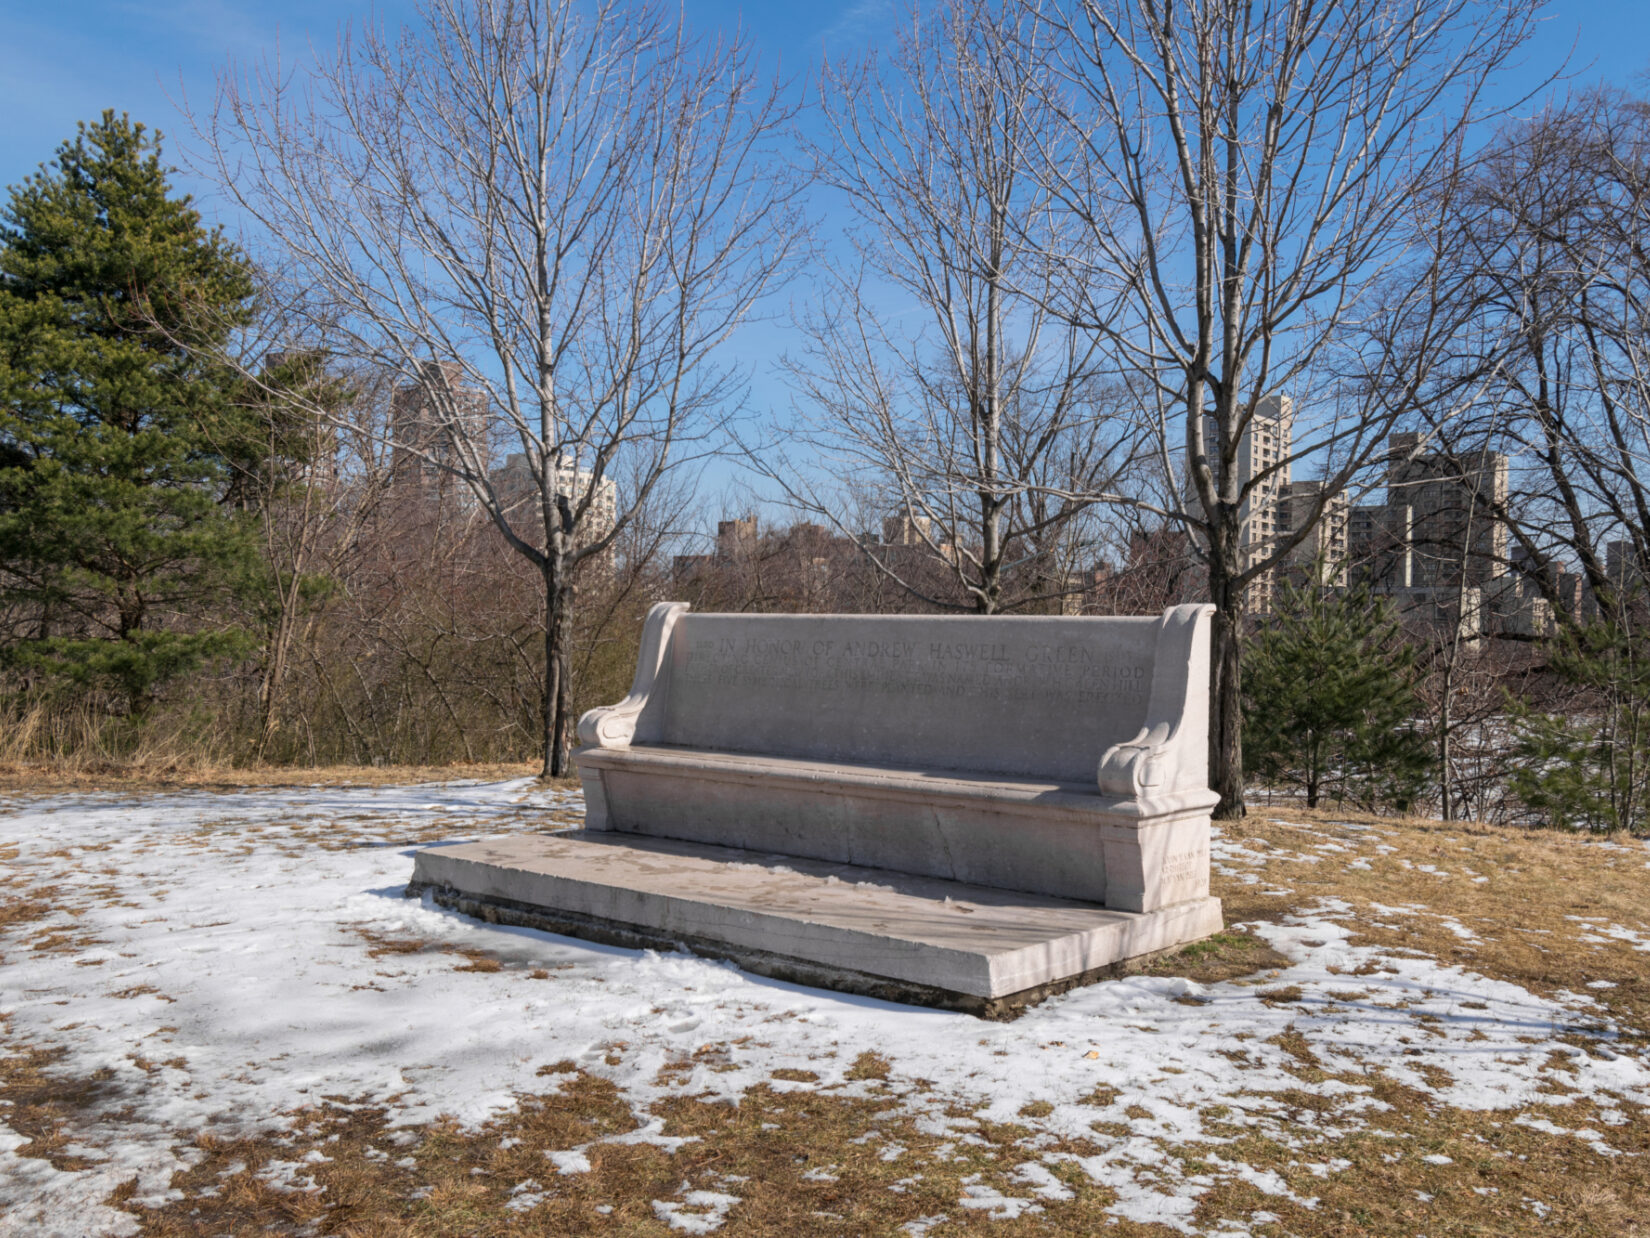 The landscape of Fort Fish, featuring the Andrew Haskell Green bench